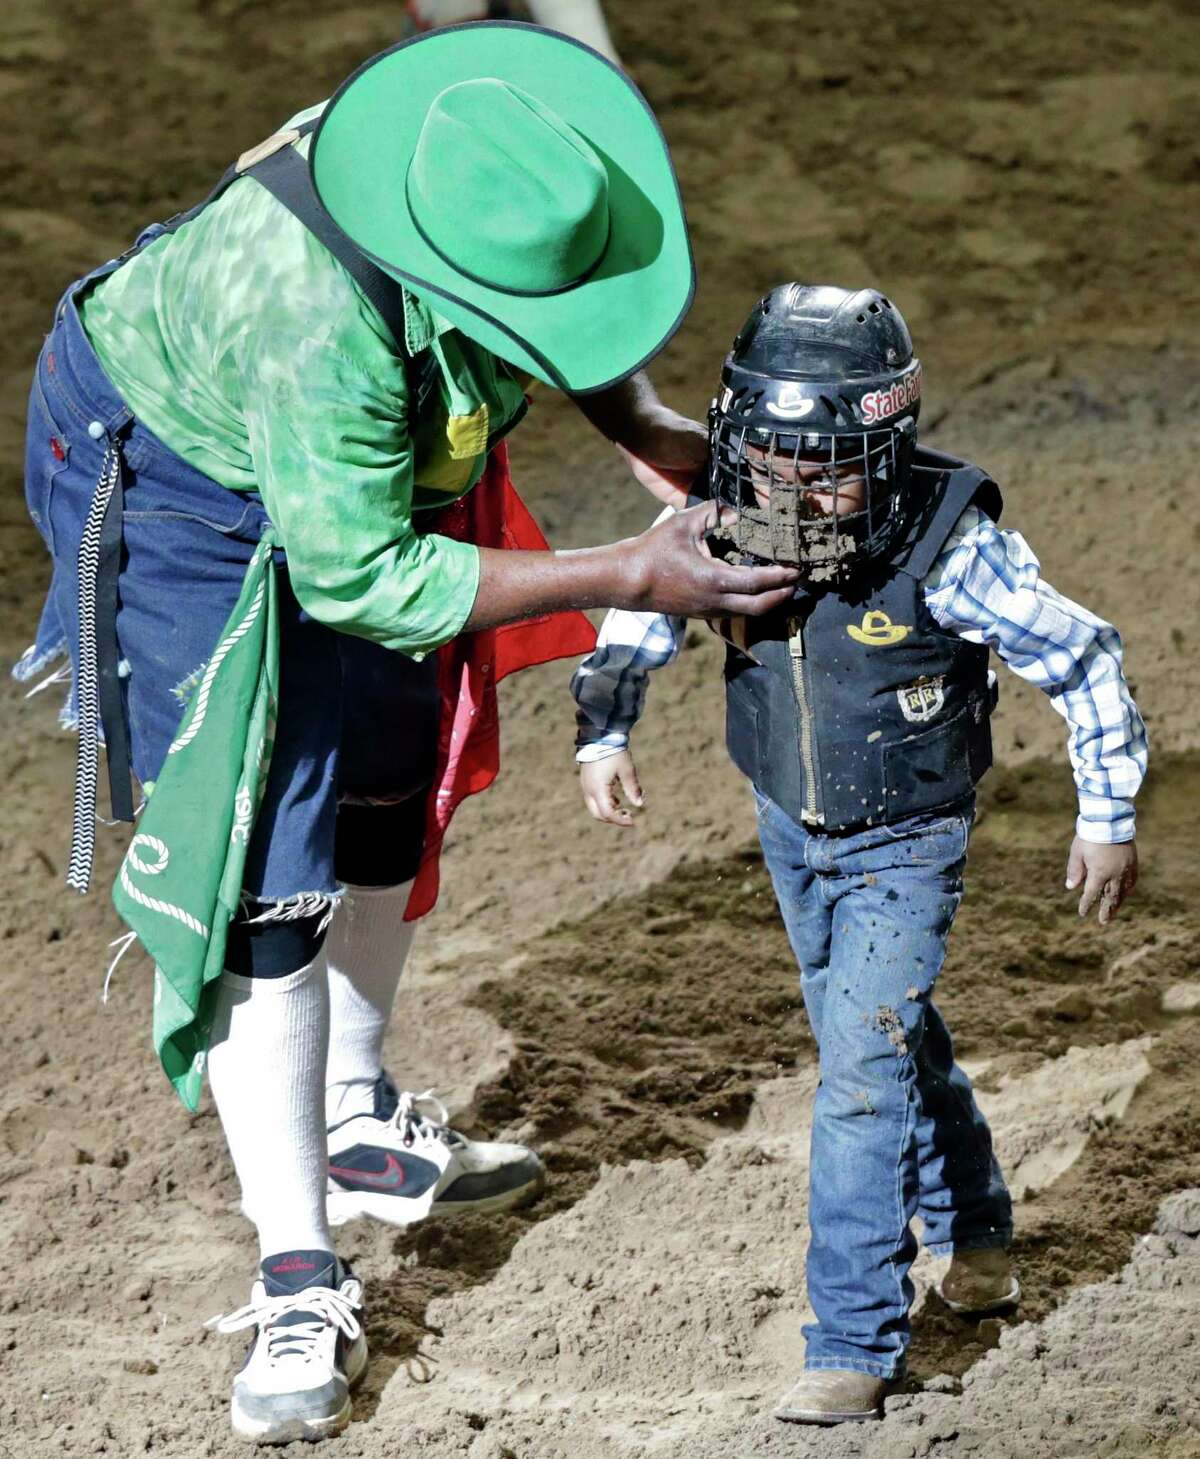 Rodeo clown Leon Coffee helps to remove mud out of a rider's face mask at the 2019 rodeo. A mouthful of dirt is sometimes a riders' only reward.